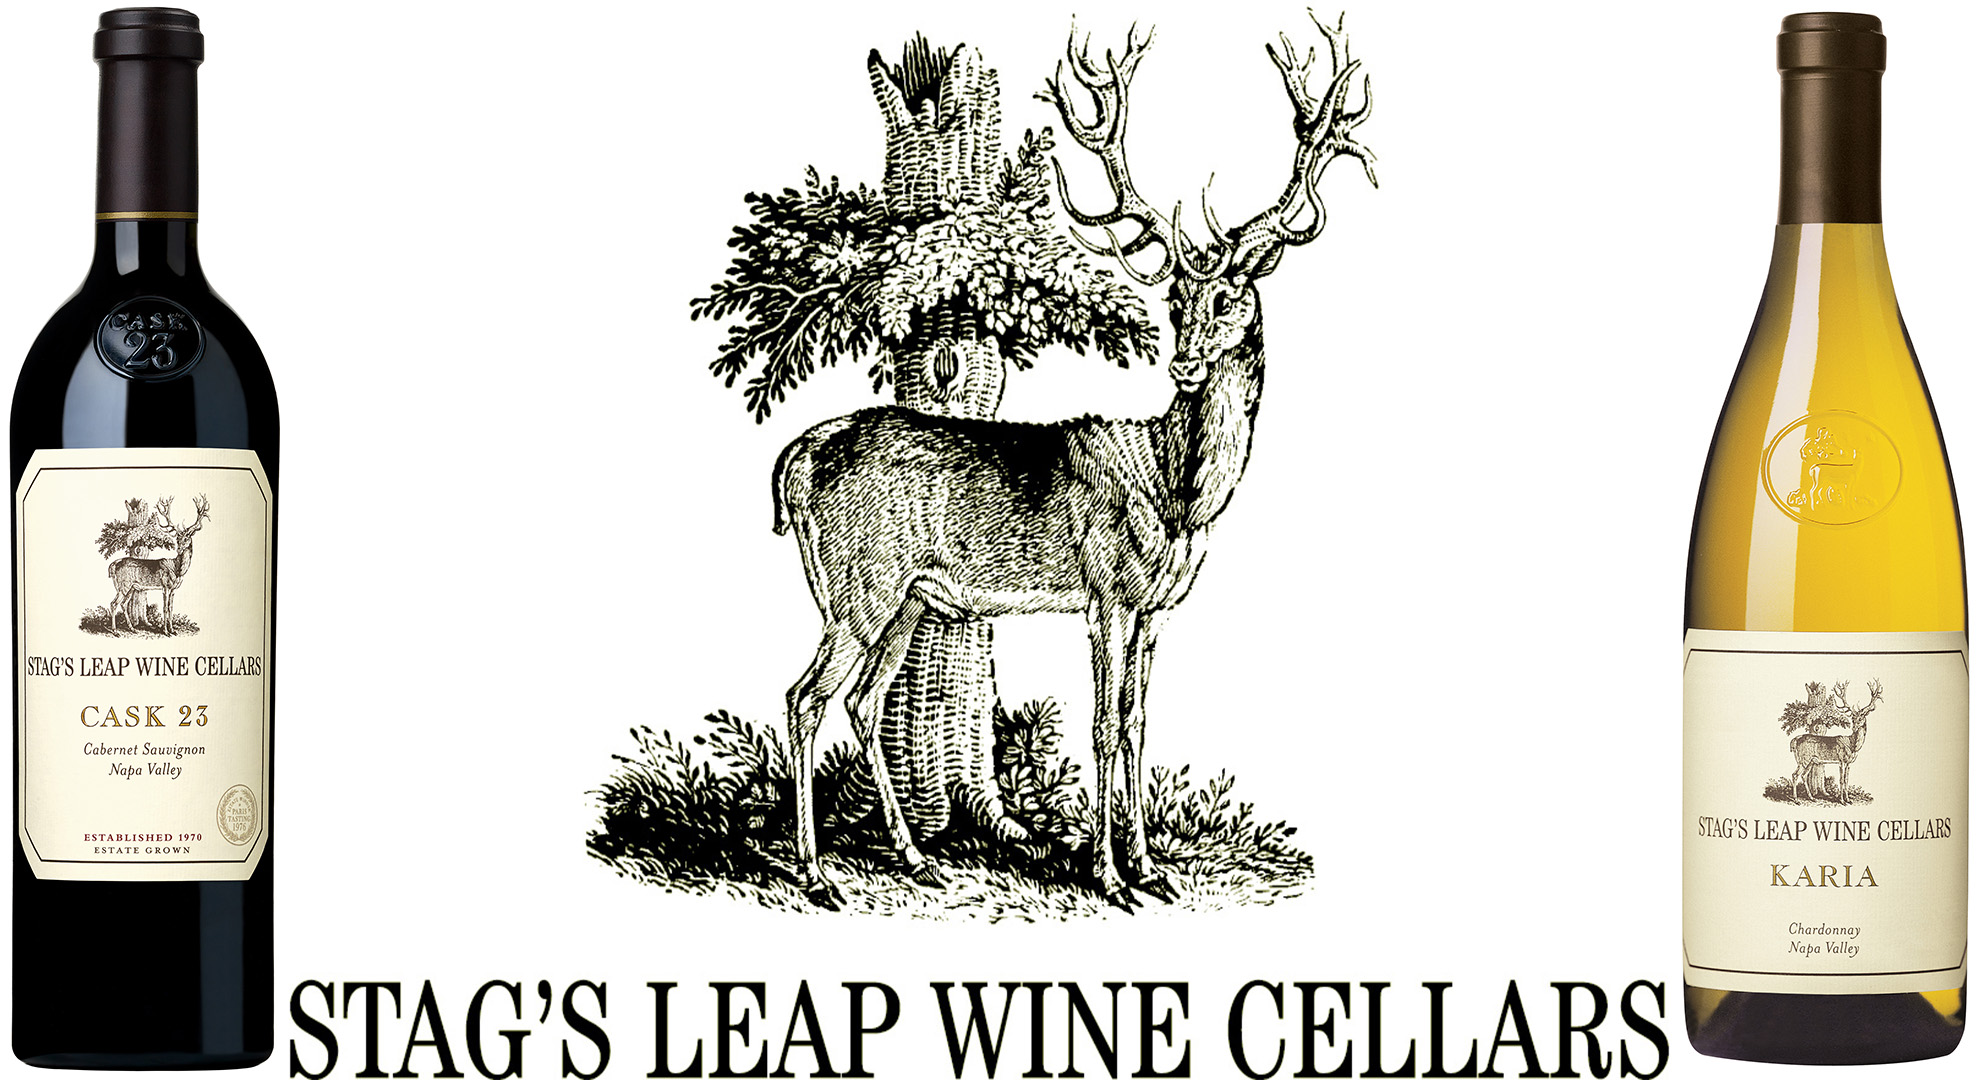 Napa Valley Wine Dinner with Iconic Stag's Leap Wine Cellars